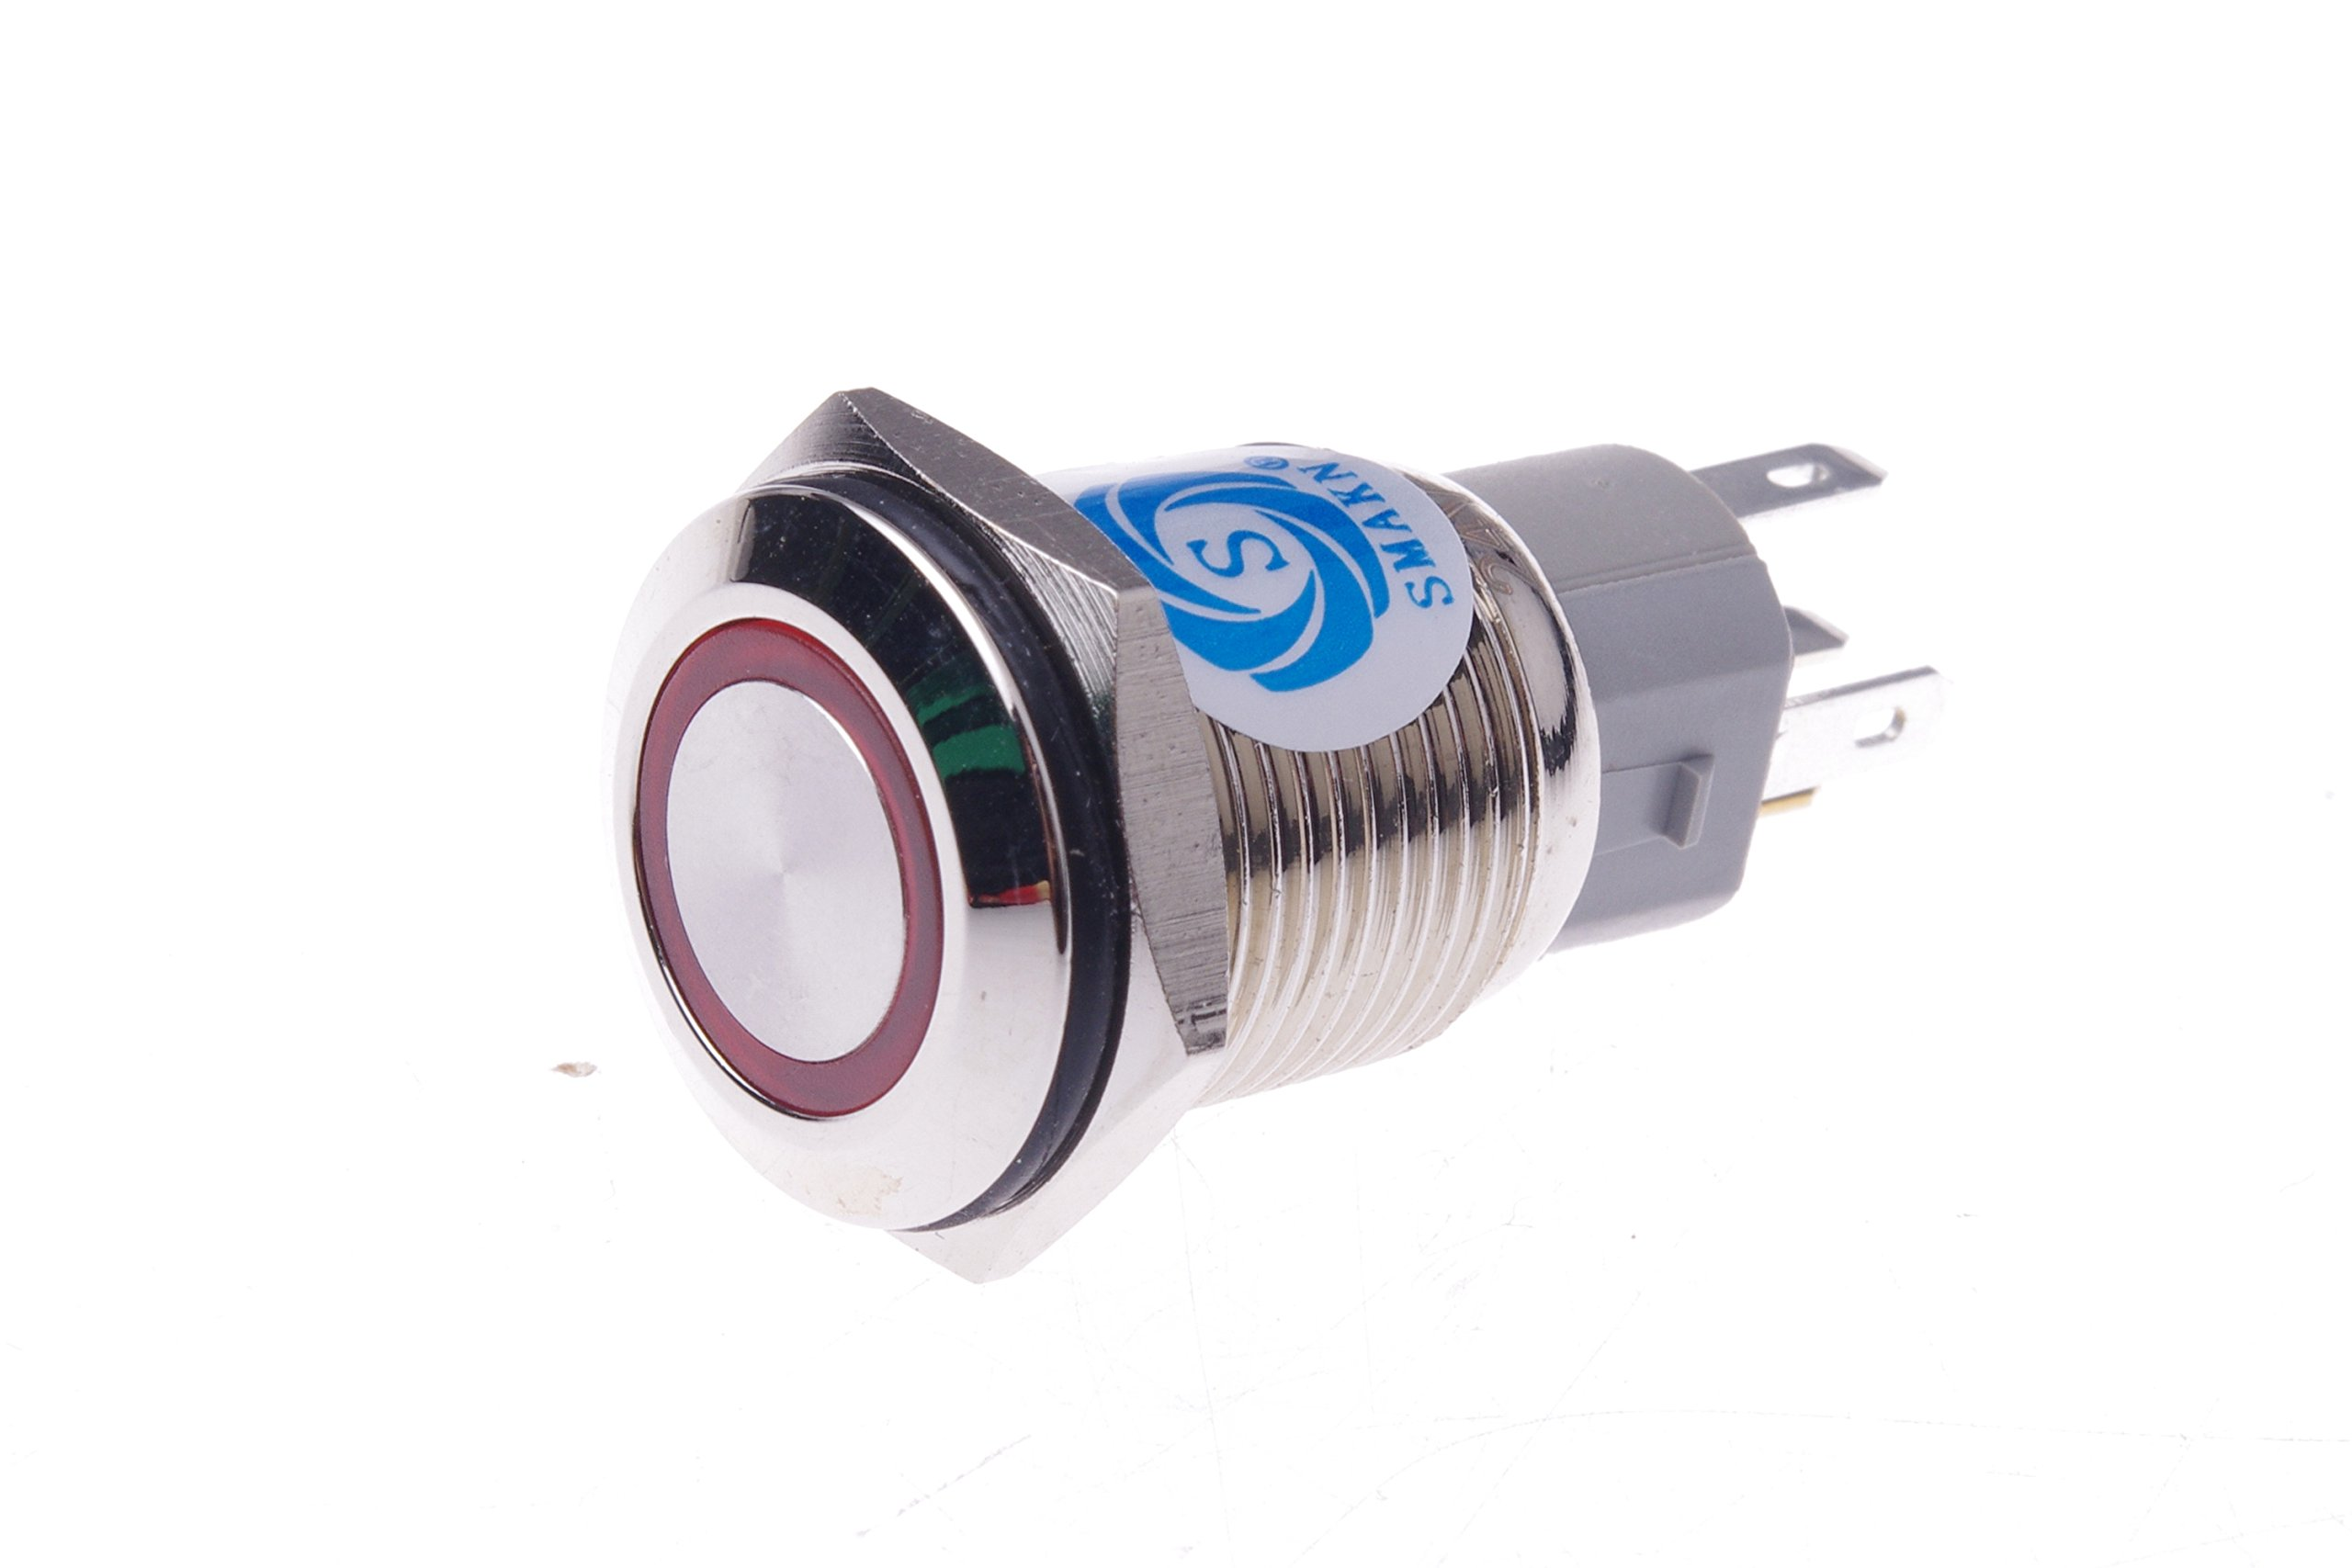 SMAKN® RED Led 16mm 12V stainless Steel Round Momentary Push Button Switch with transposon